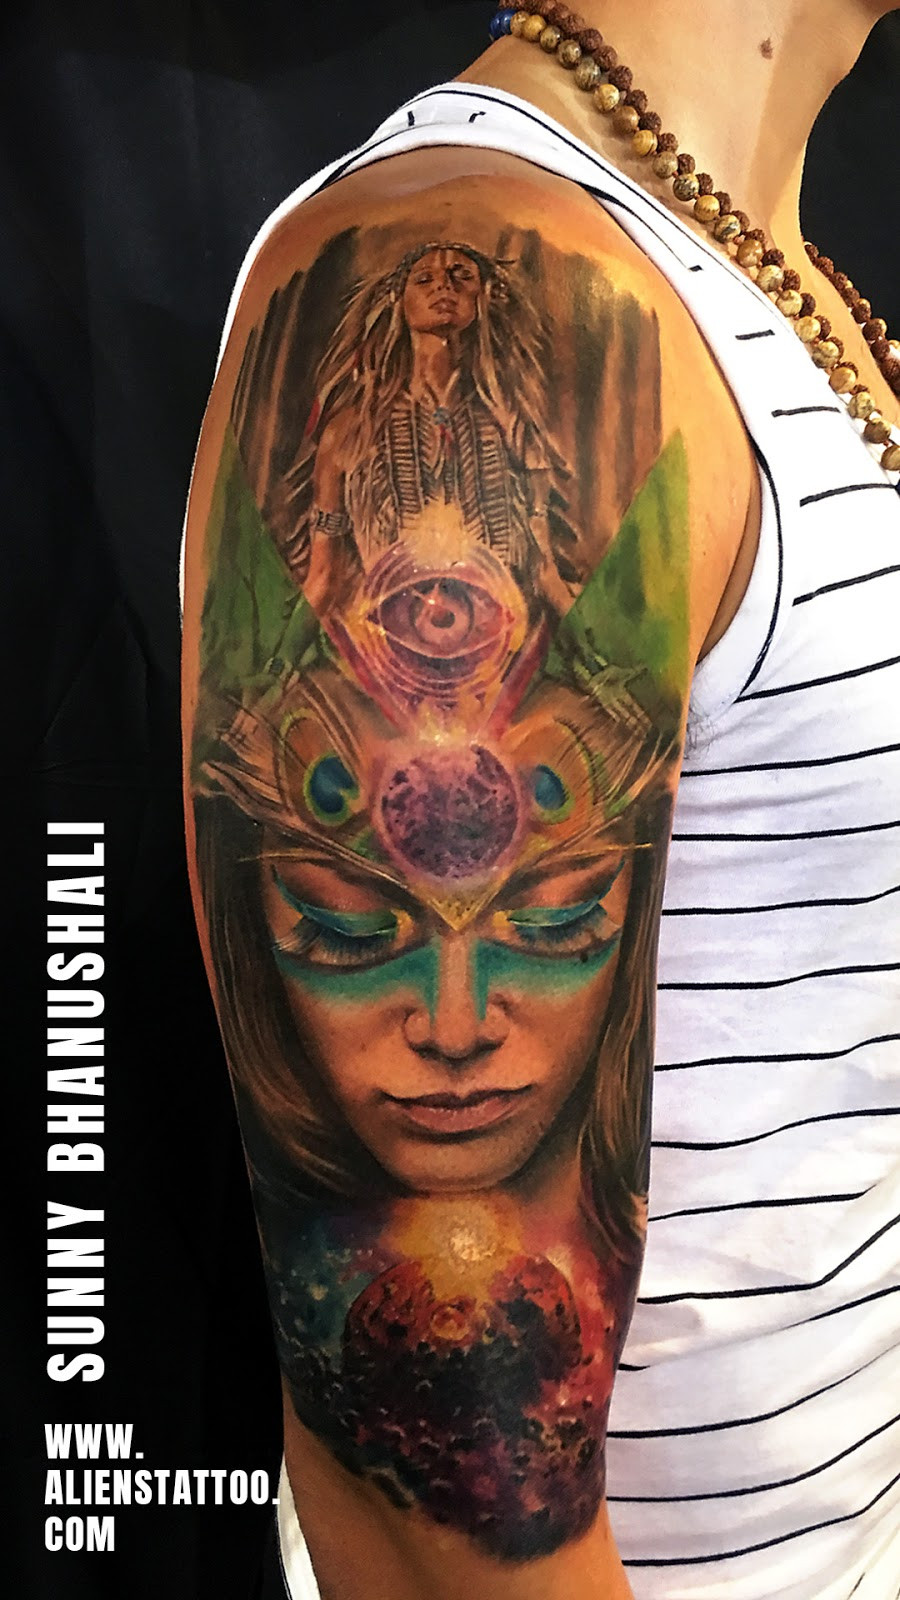 Colourful women's portrait tattoo with feathers made at Aliens Tattoo Studio